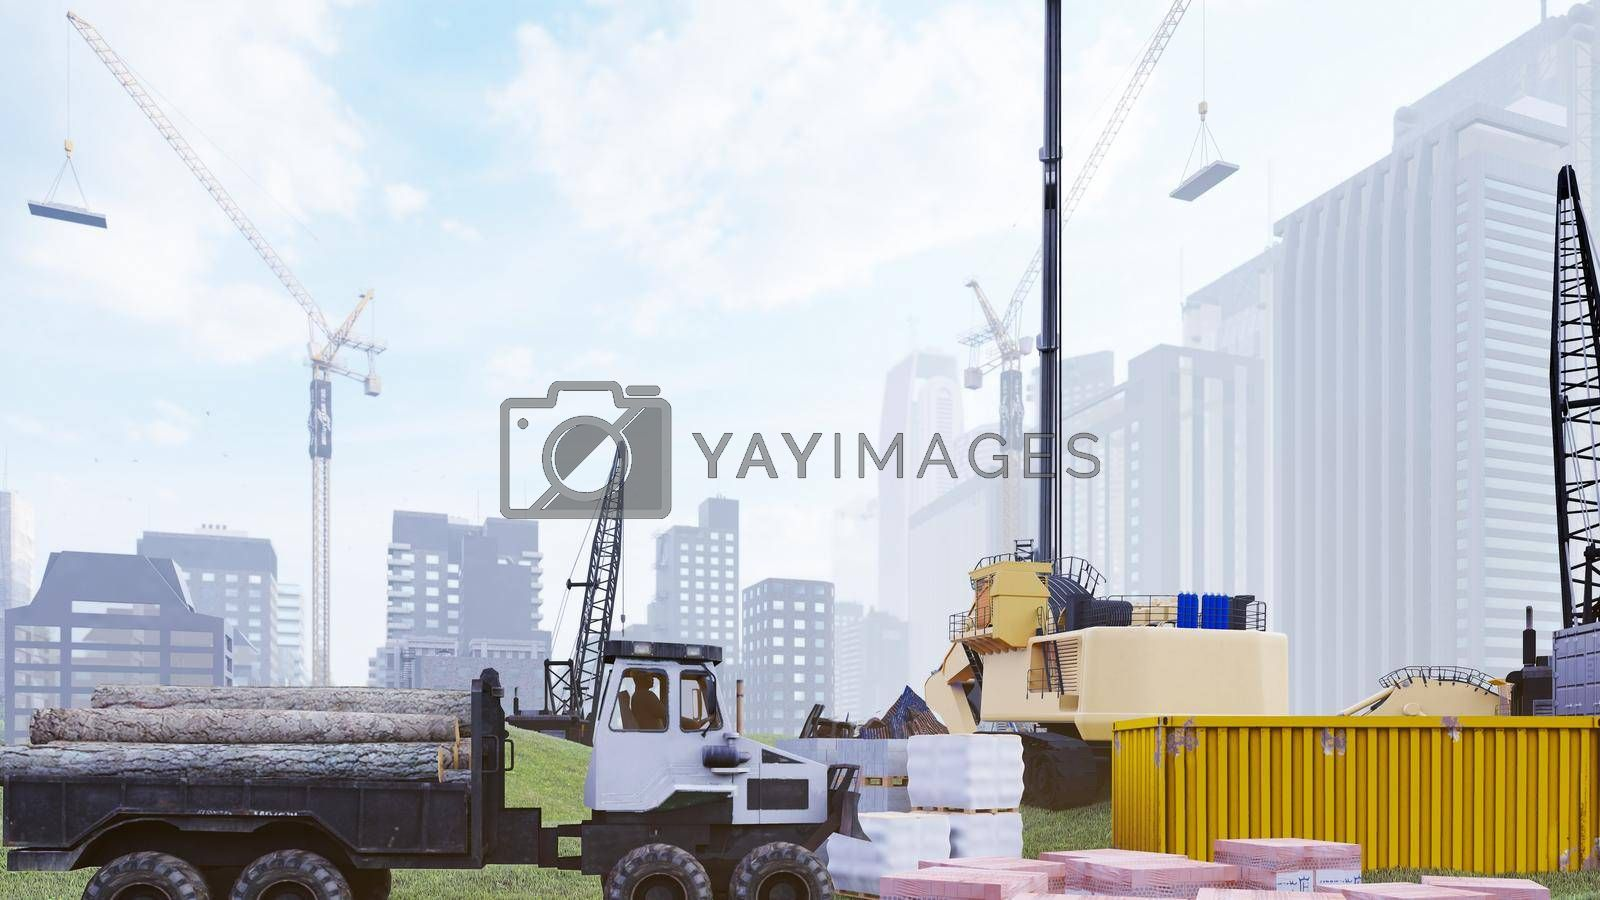 Industrial landscape with cranes and houses under construction, construction site on a foggy summer day. The concept of the construction.